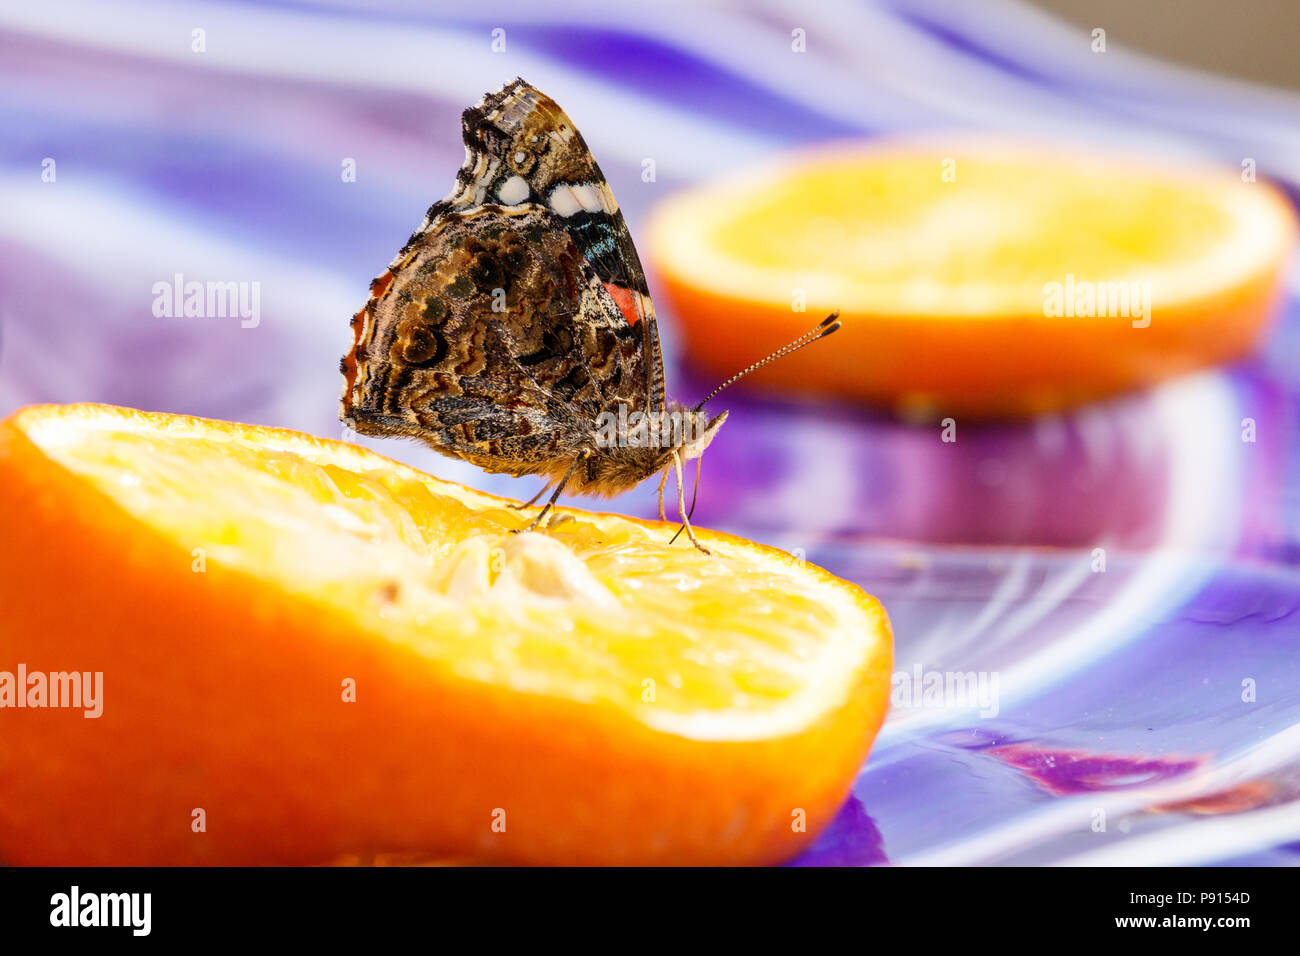 Painted Lady Butterfly With Closed Wings, Drinking From An Orange Slide On  Colorful Glass Table.